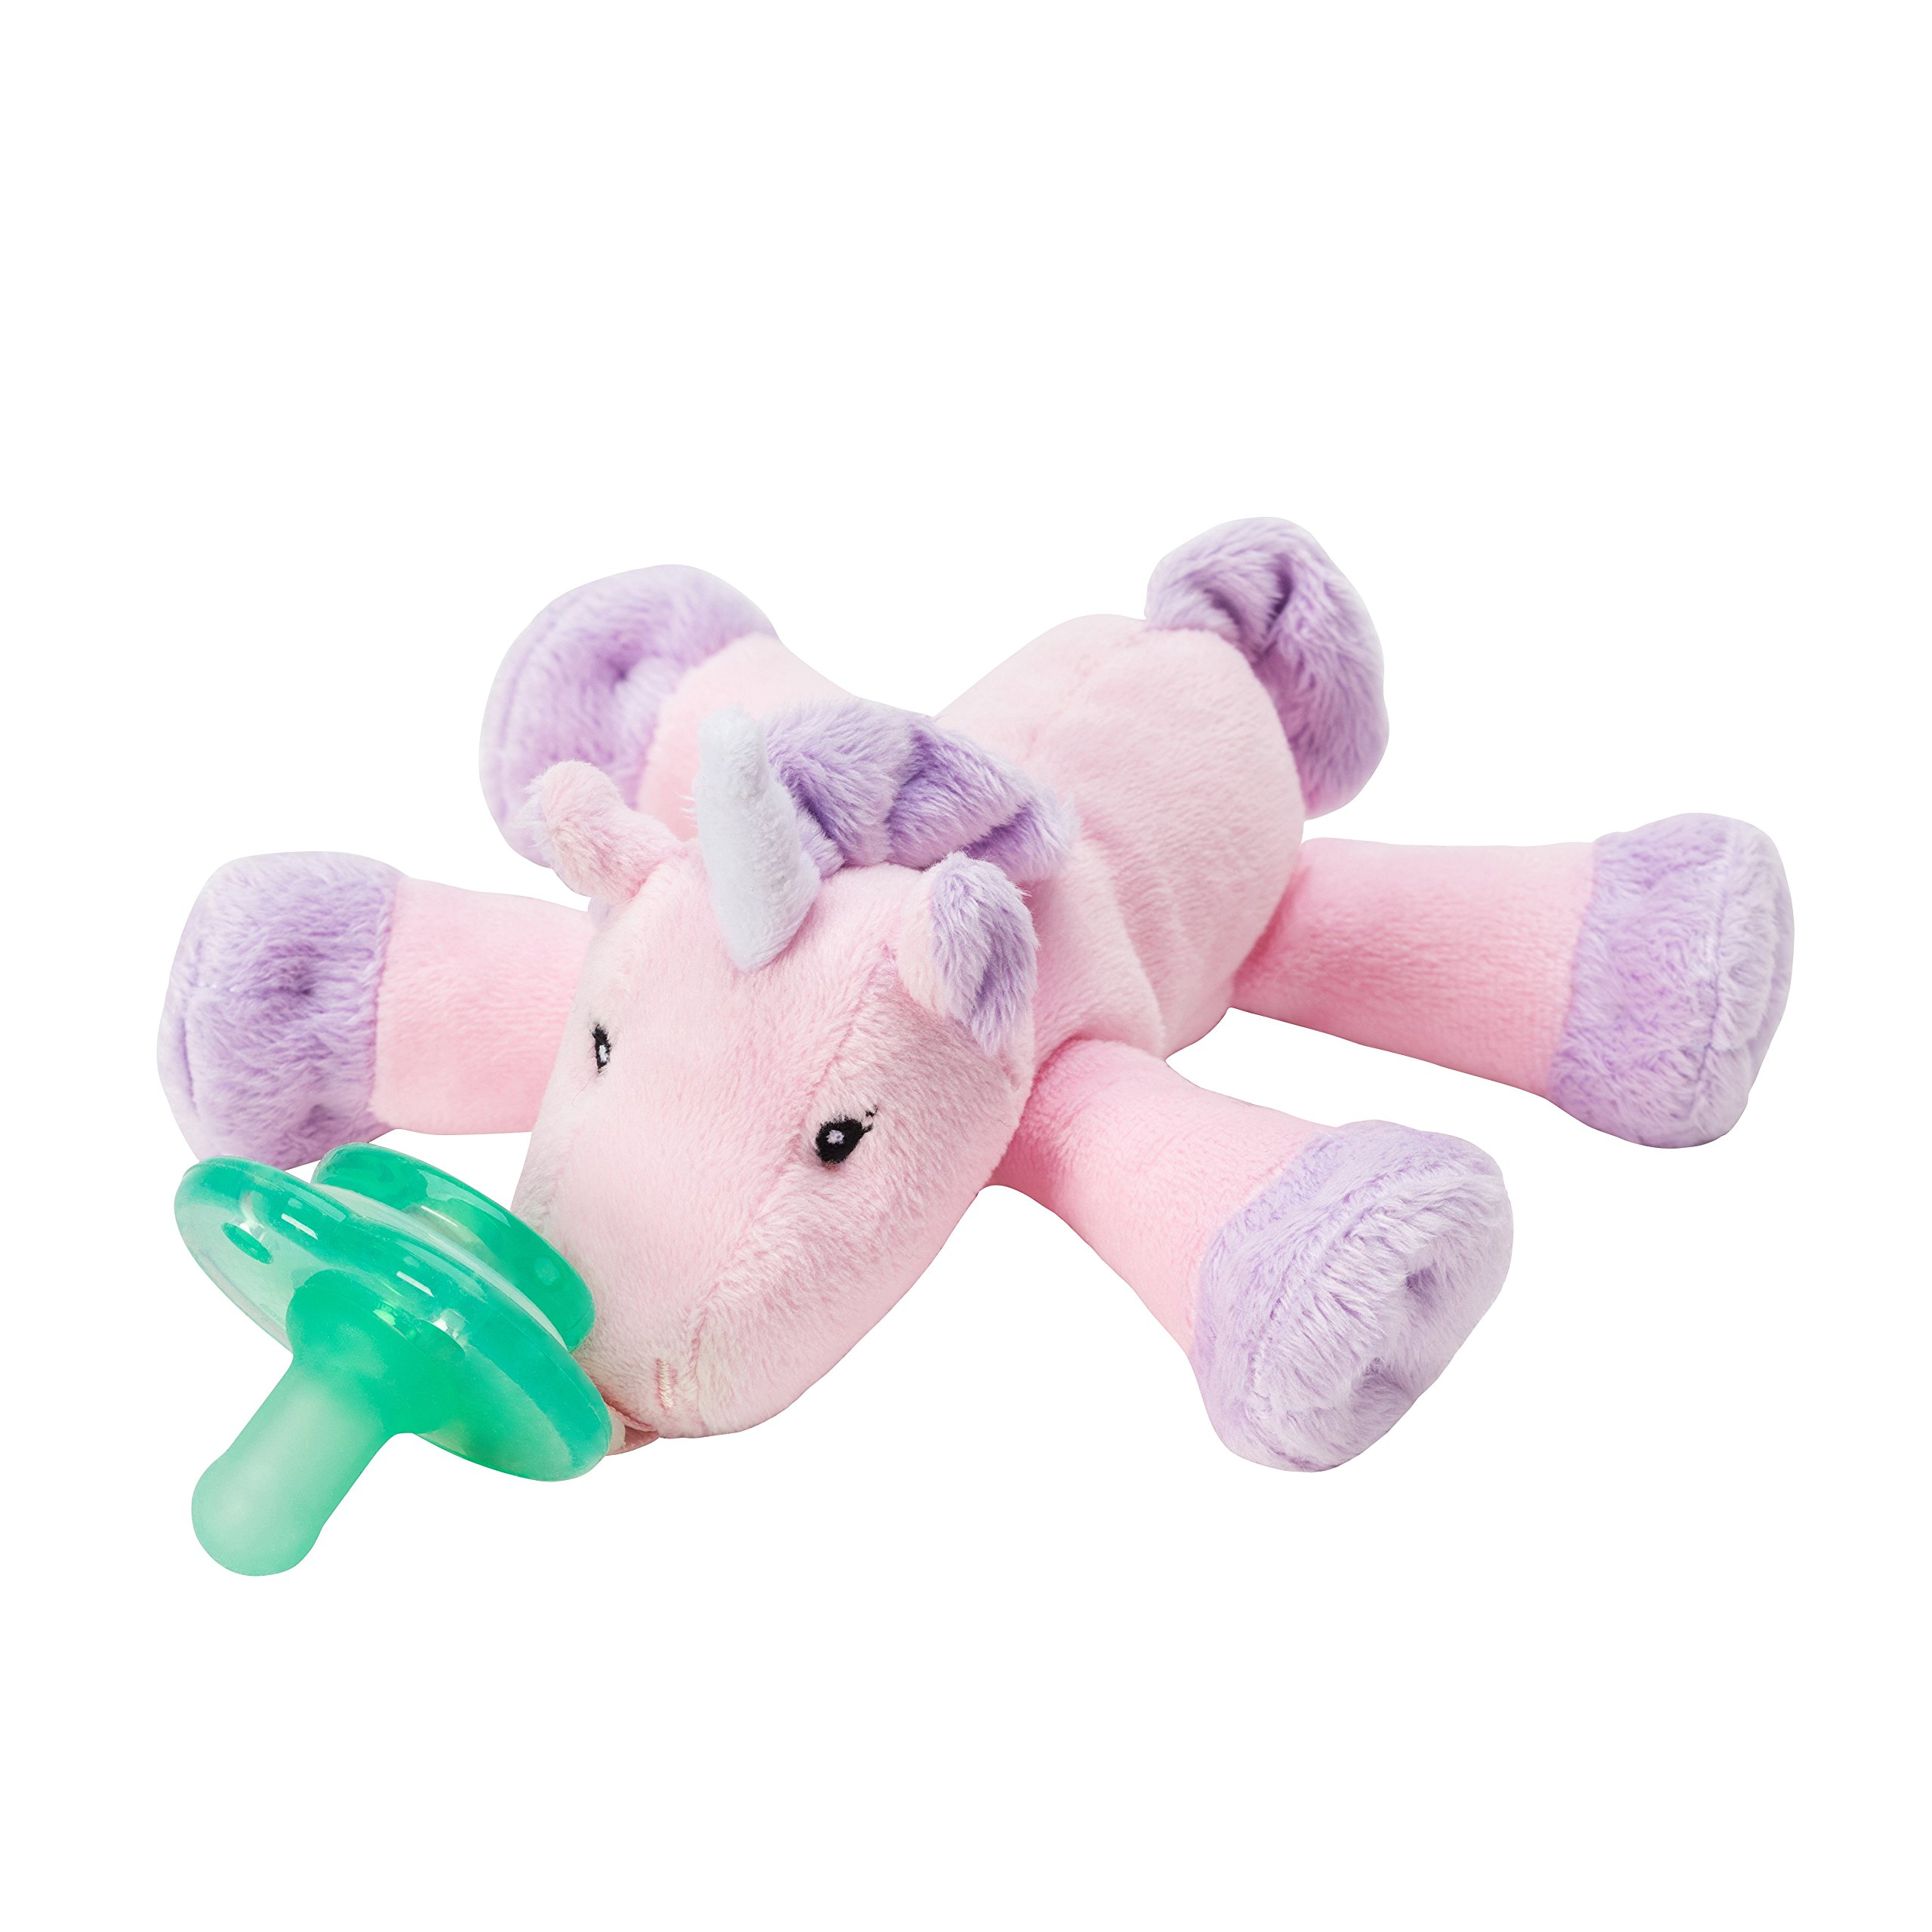 Nookums Paci-Plushies Shakies - Unicorn Pacifier Holder and Rattle (2 in 1) (Plush Toy Includes Detachable Pacifier, Use with Multiple Brand Name Pacifiers) by Nookums